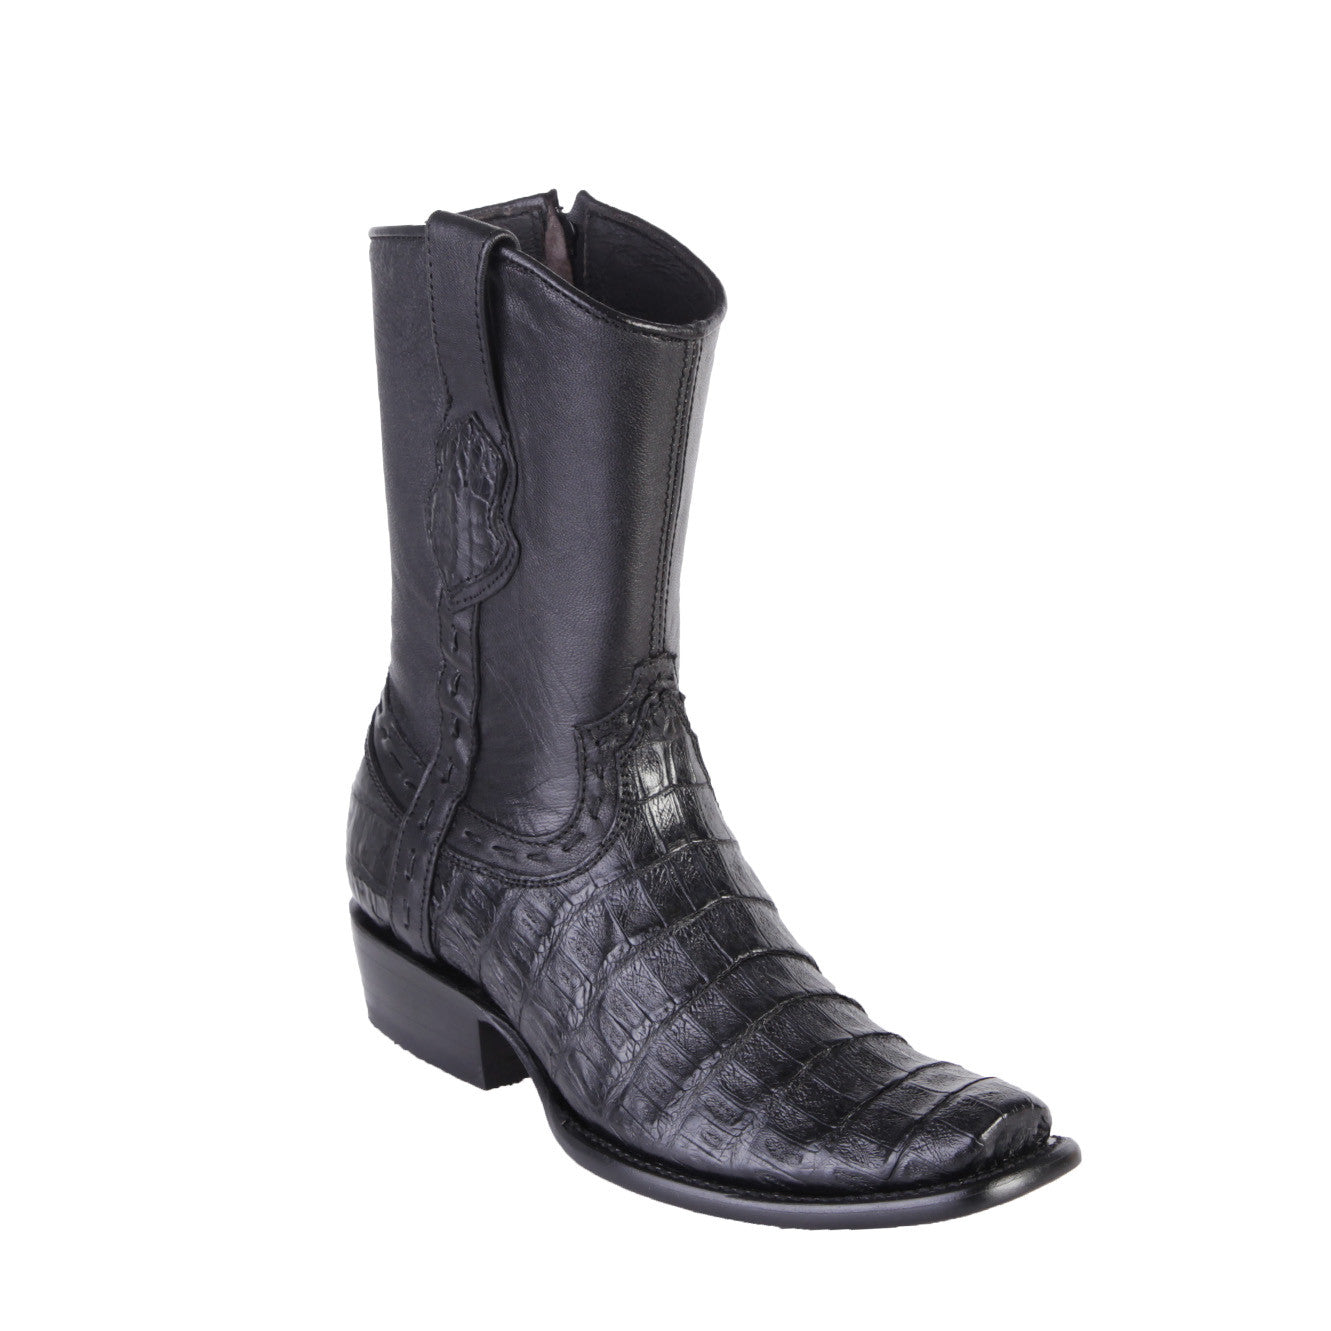 King Exotic Men's Dubai Toe Caiman Belly Boots